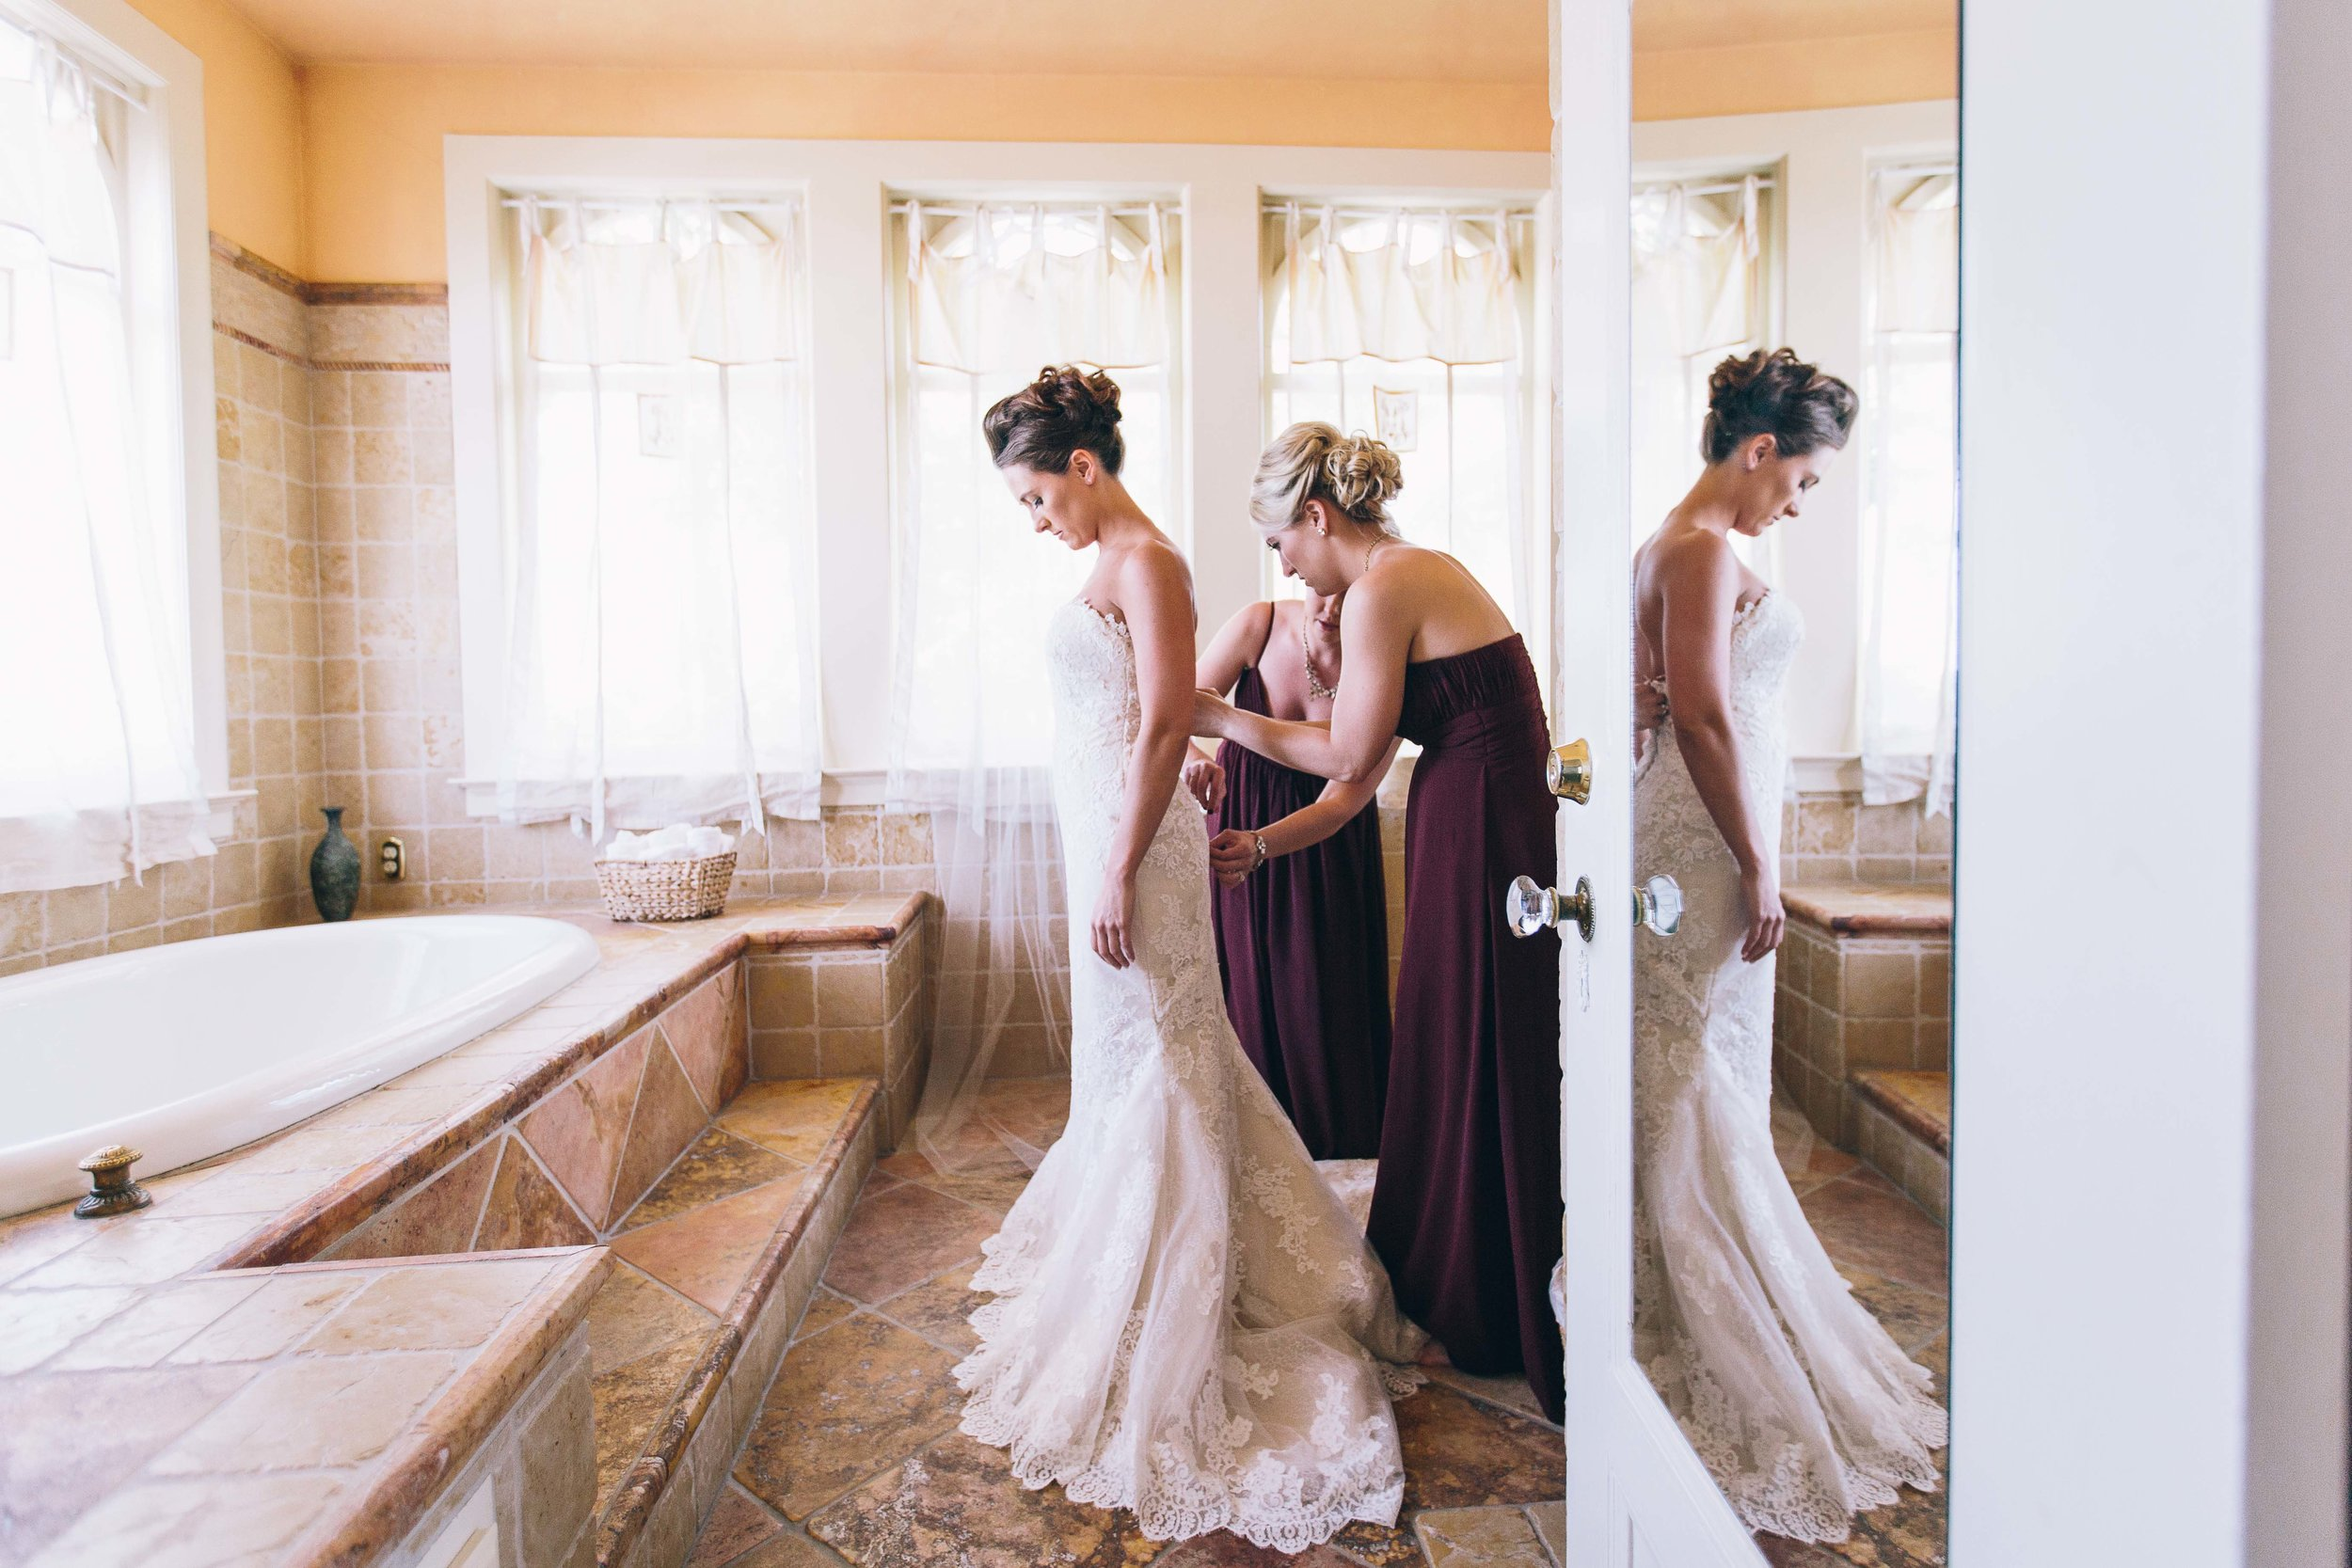 Pearly and Mark - Grand Island Mansion Wedding - Summer - JBJ Pictures Wedding and Engagement Photographer in San Francisco and Sacramento (4b.jpg